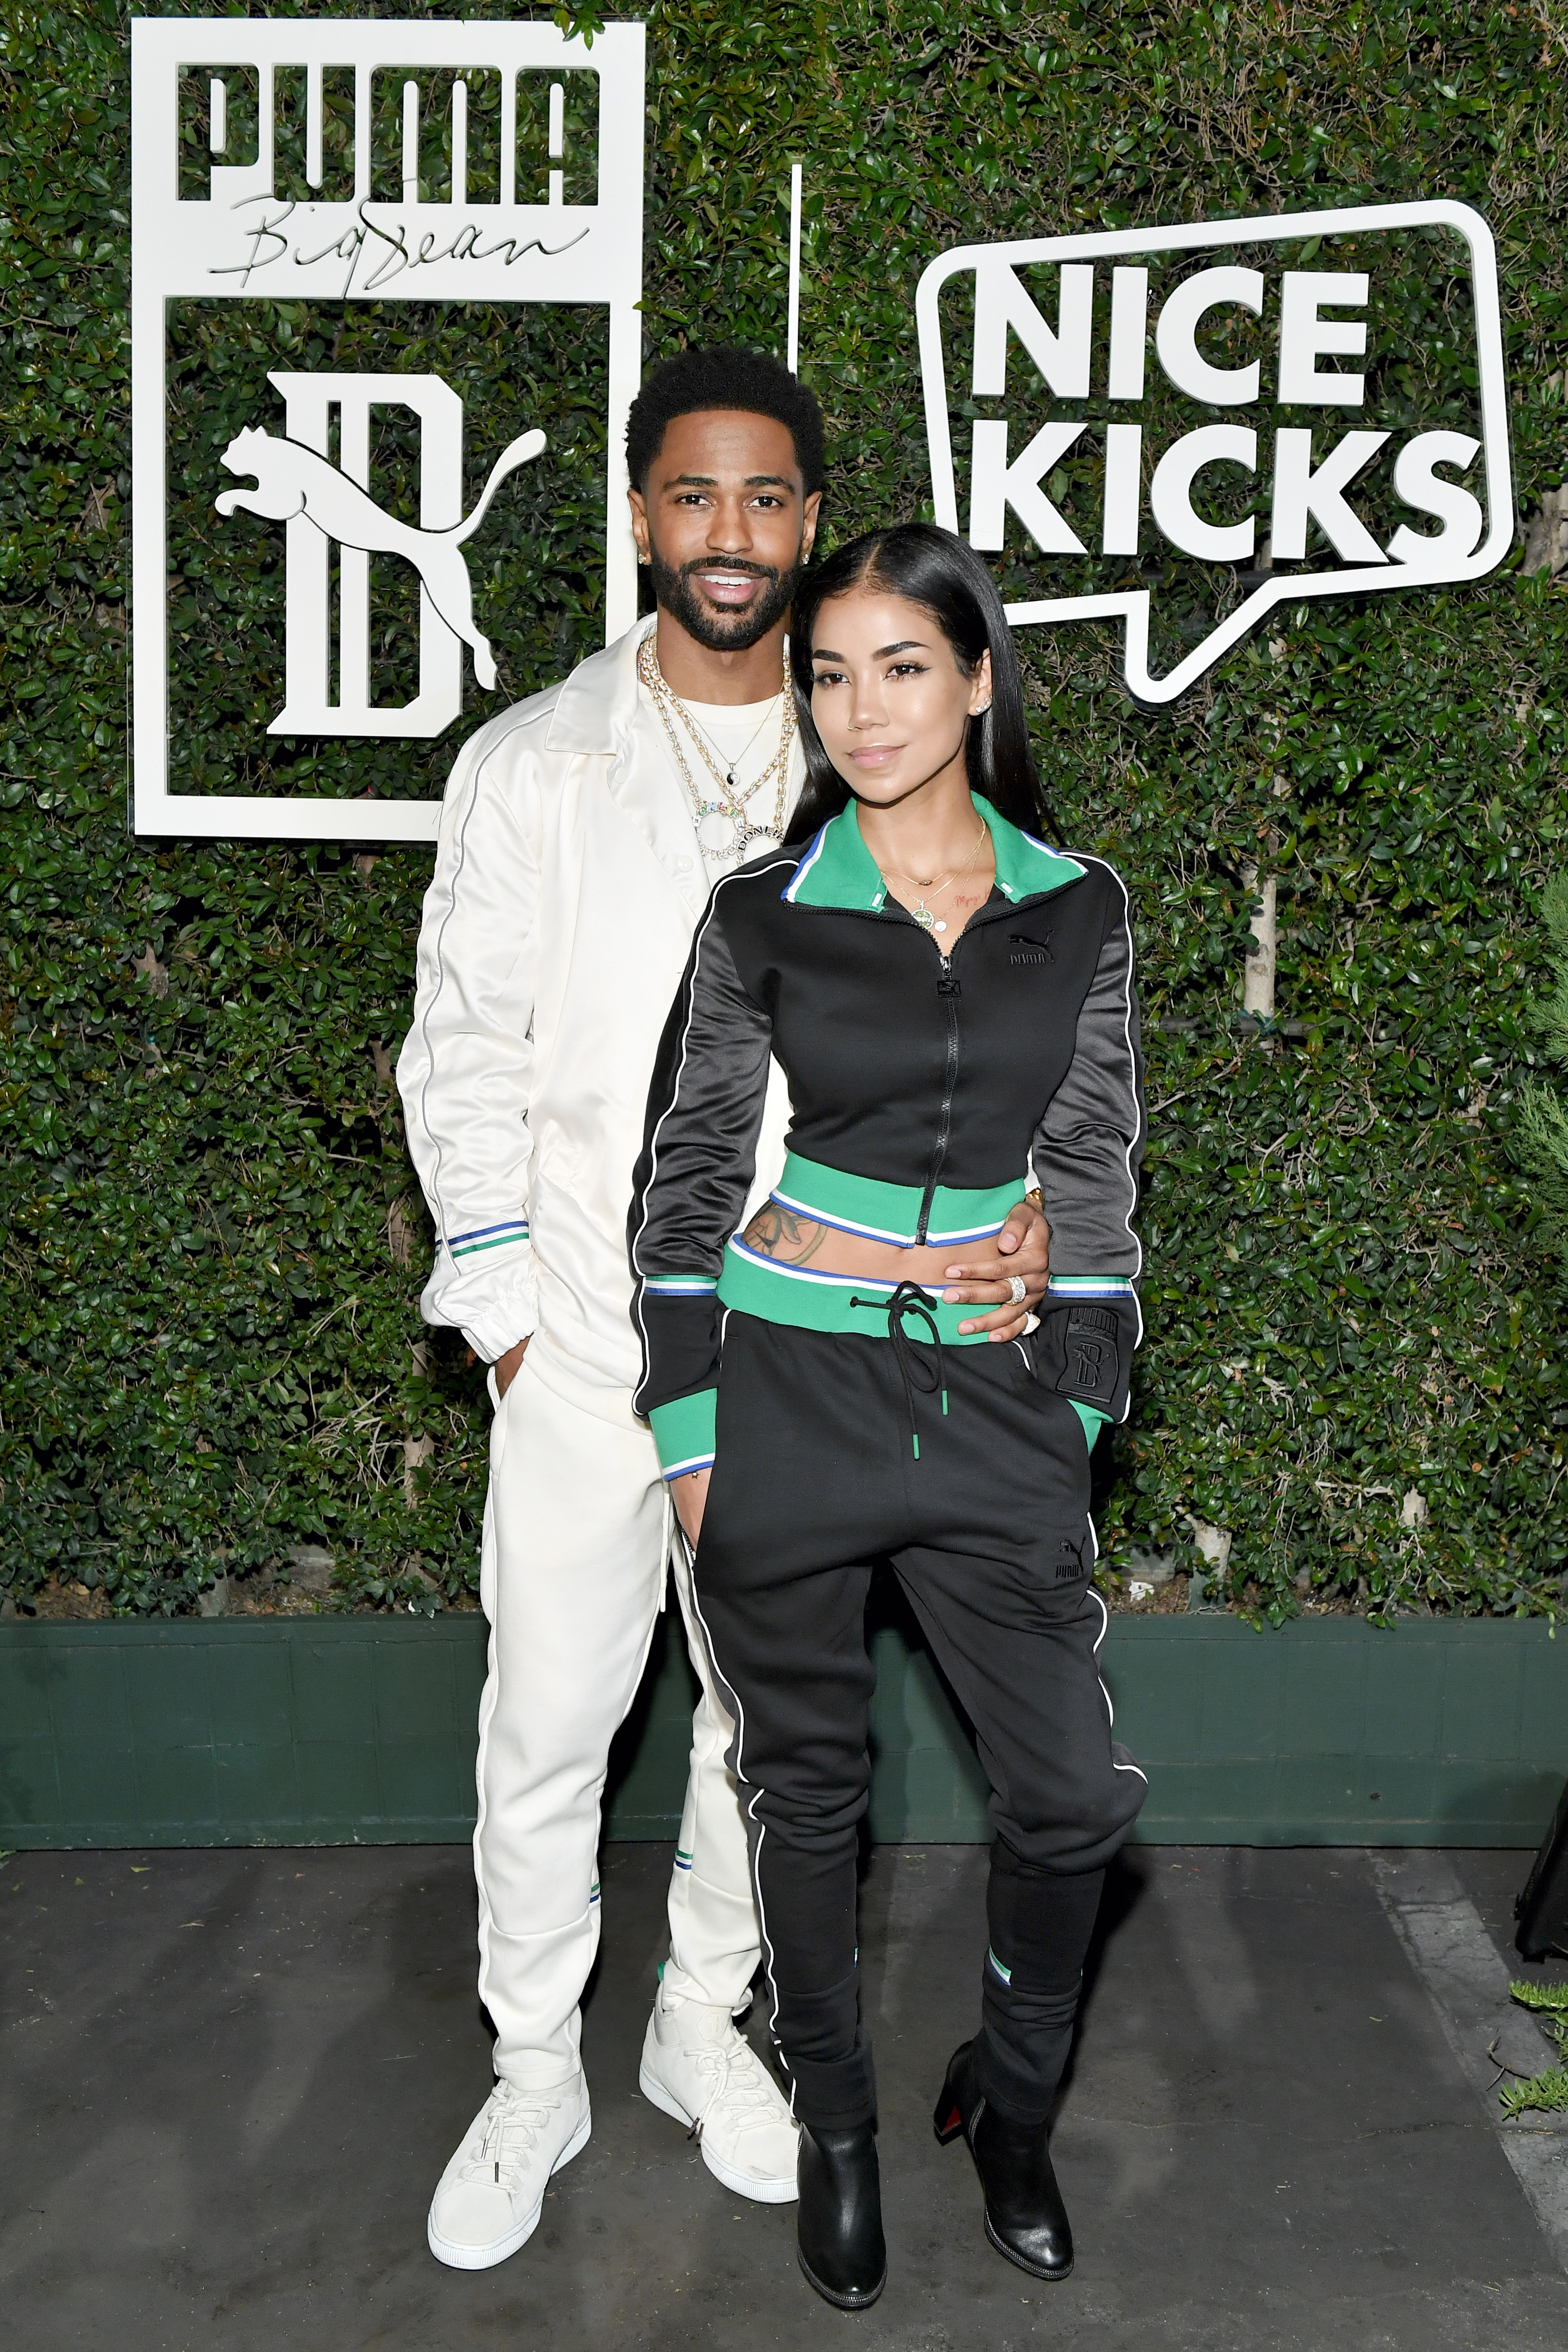 LOS ANGELES, CA - MARCH 19:  Big Sean (L) and Jhene Aiko attend PUMA x Big Sean Collection Launch Event at Goya Studios on March 19, 2018 in Los Angeles, California.  (Photo by Neilson Barnard/Getty Images for PUMA)